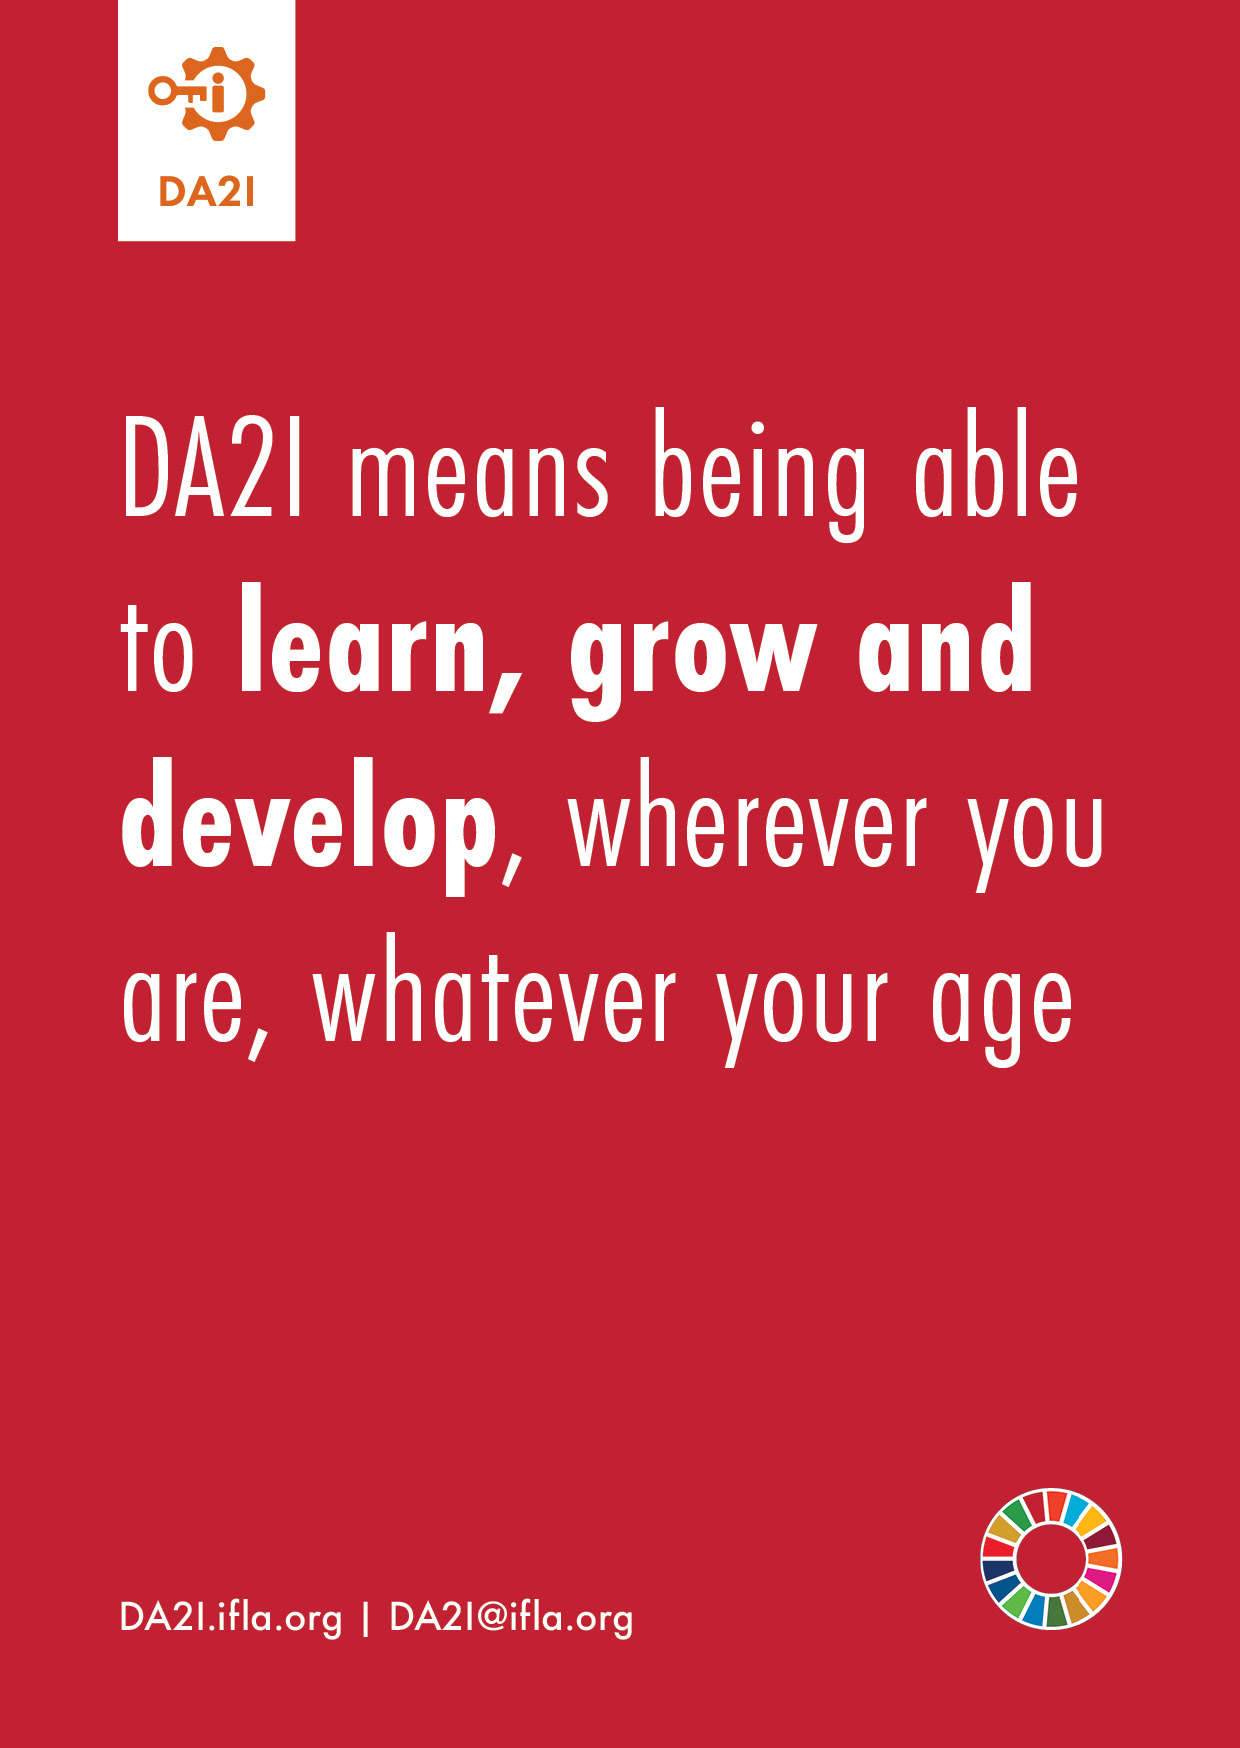 DA2I means being able to learn, grow and develop, wherever you are, whatever your age